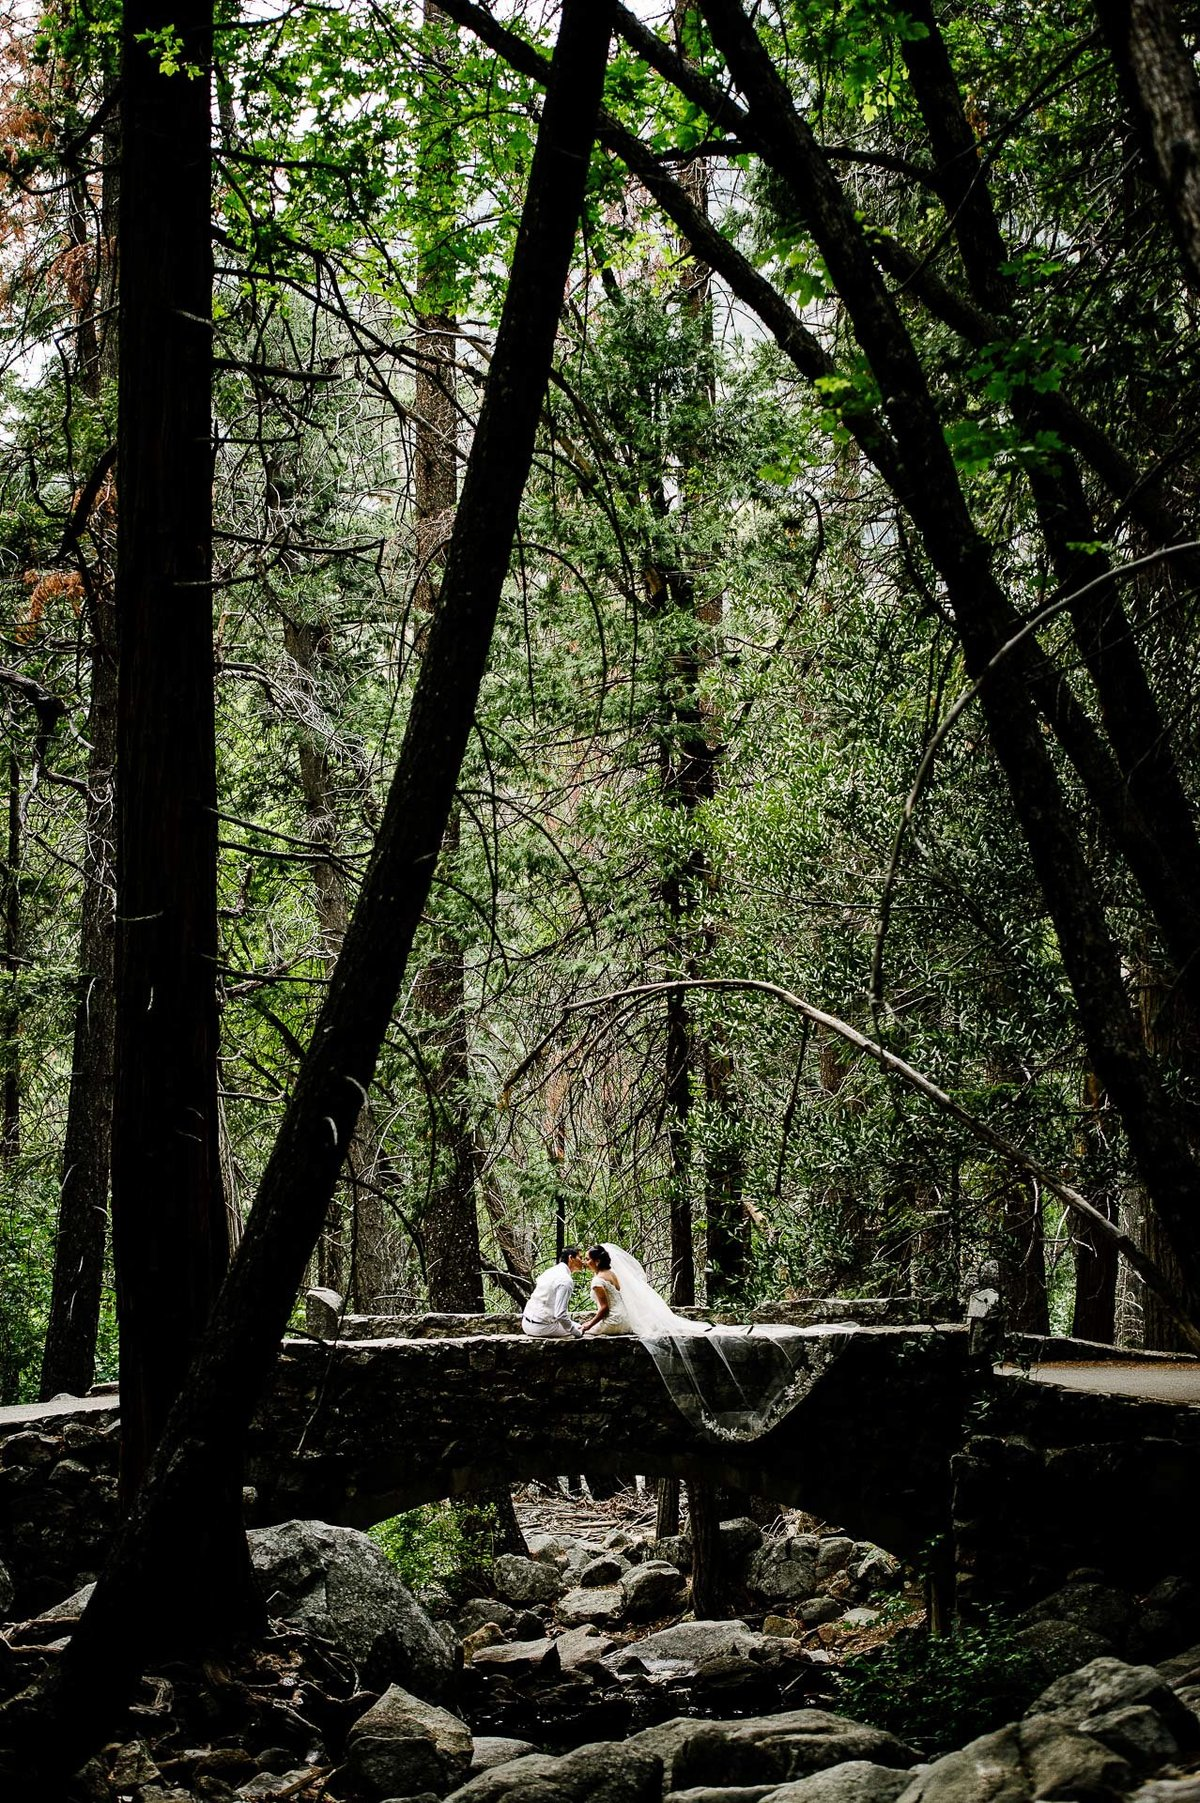 bride and groom sitting for their wedding  aT YOSEMITE NATIONAL PARK